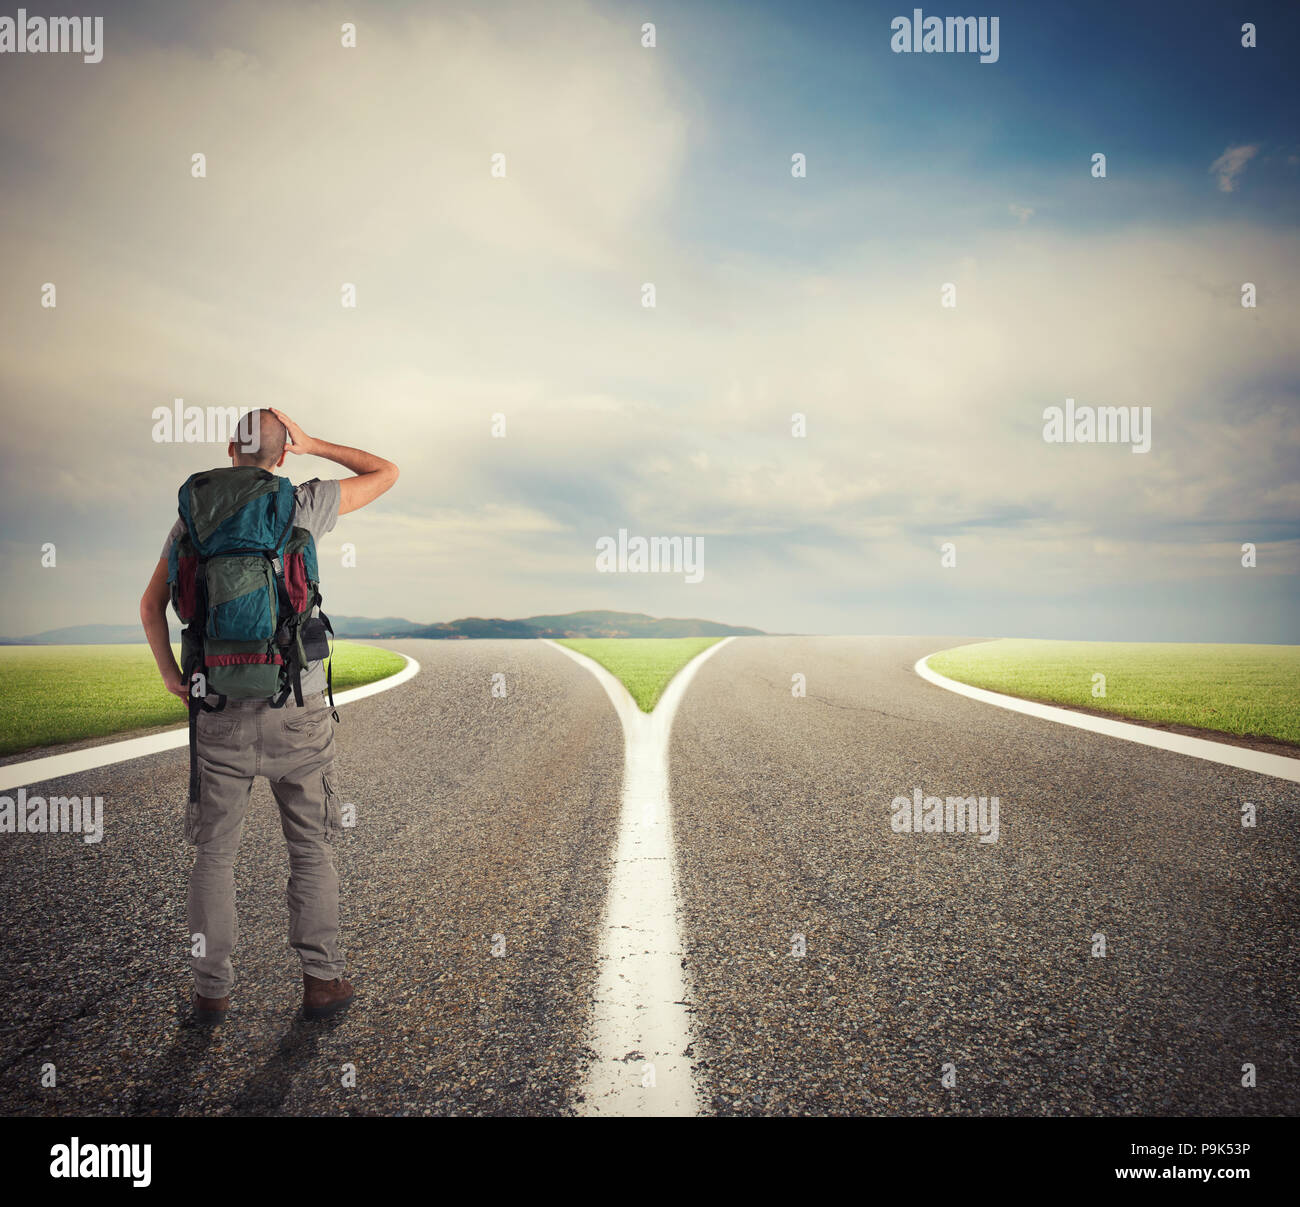 Businessman in front of a crossway must select the right way - Stock Image